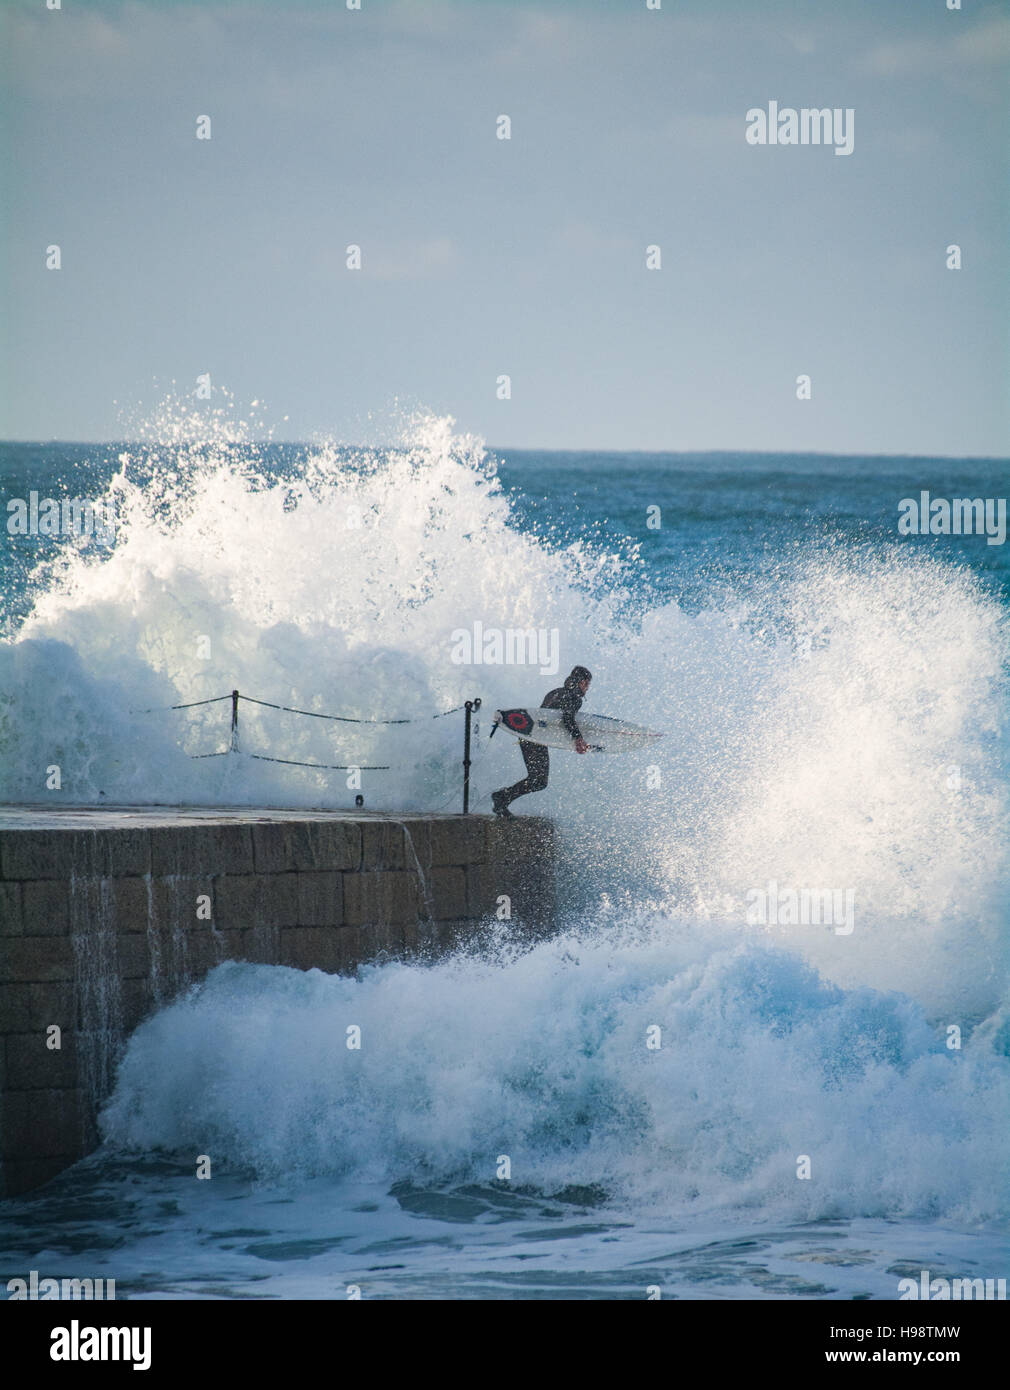 Porthleven, Cornwall, UK. 20th November 2016. UK Weather. Surfers taking risky route to the sea at Porthleven after Stock Photo